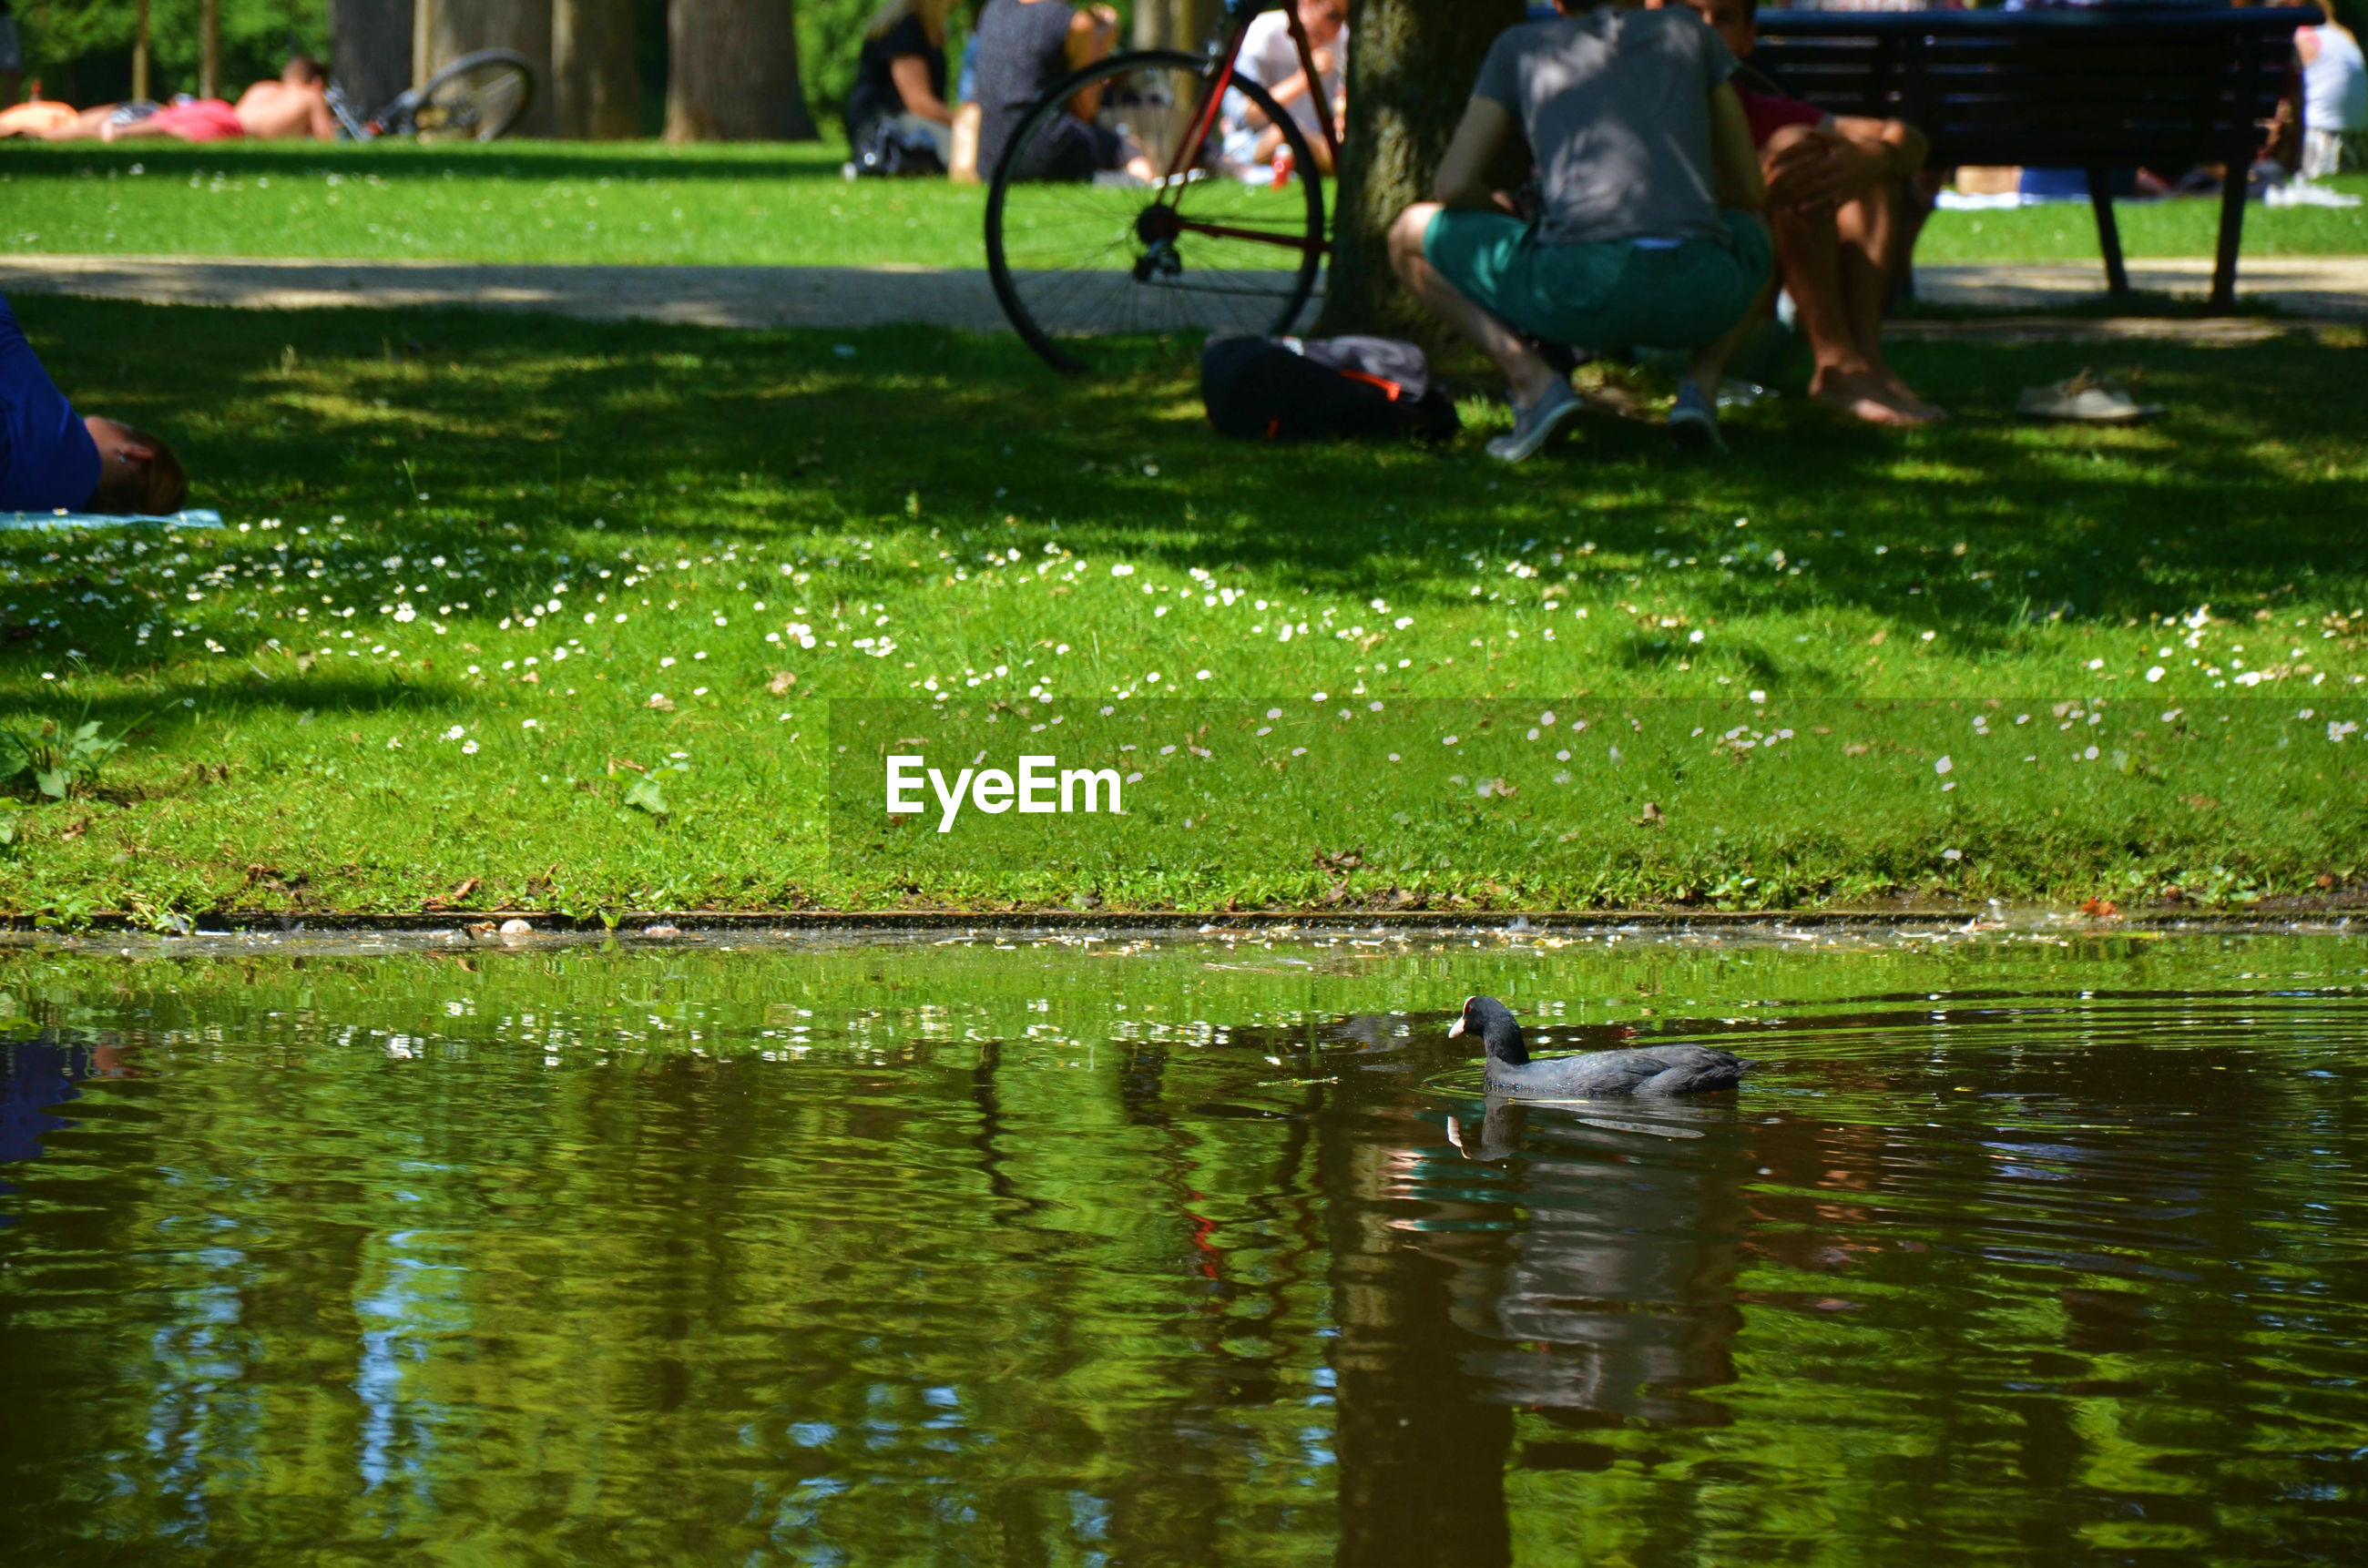 Coot swimming in pond with man crouching in background